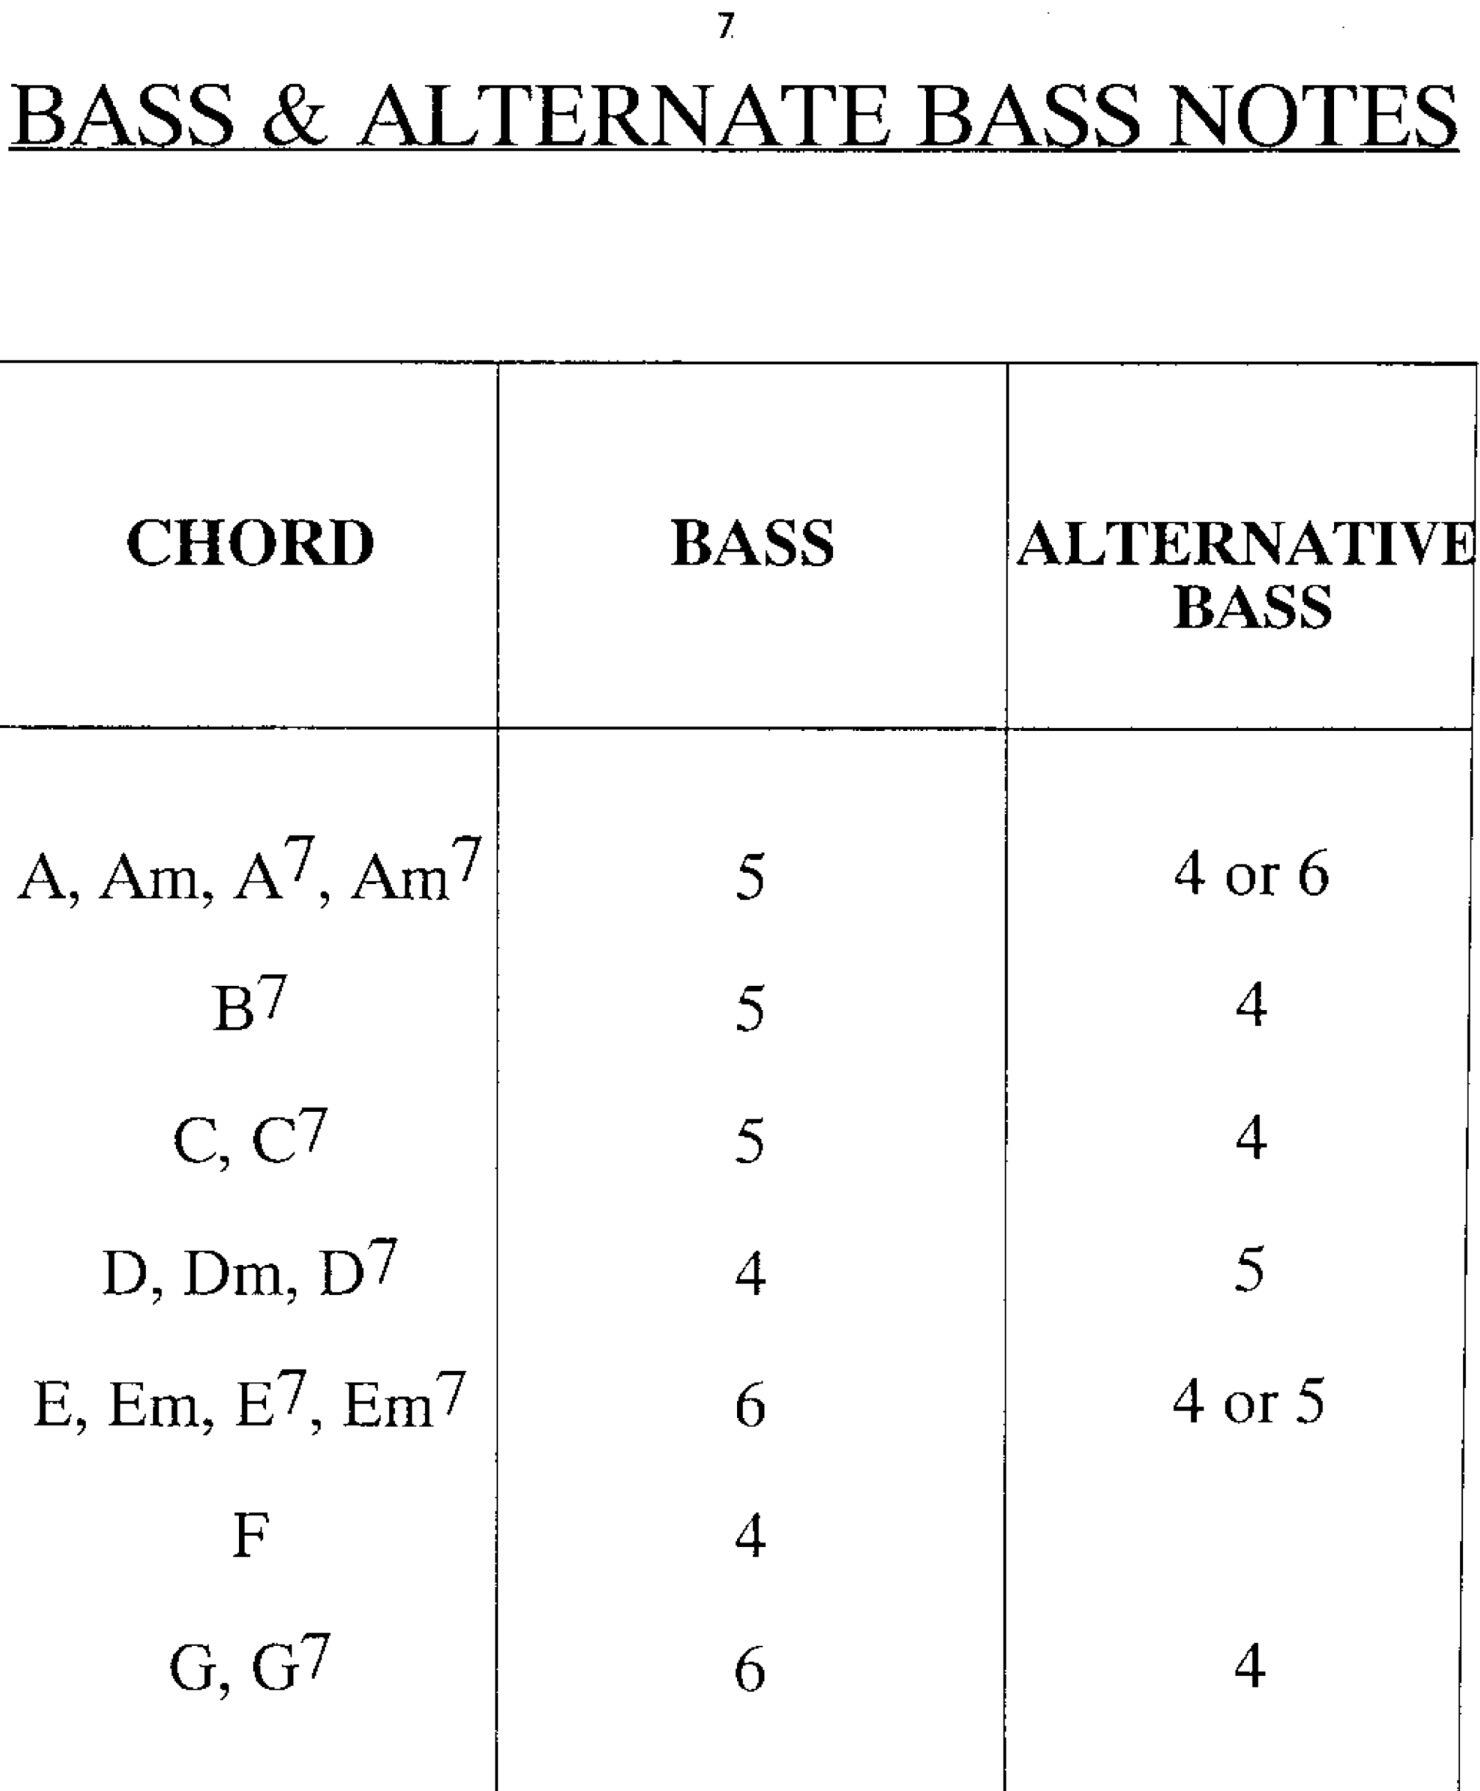 Find your bass notes on open chords http://t.co/IN7ojMKrP5